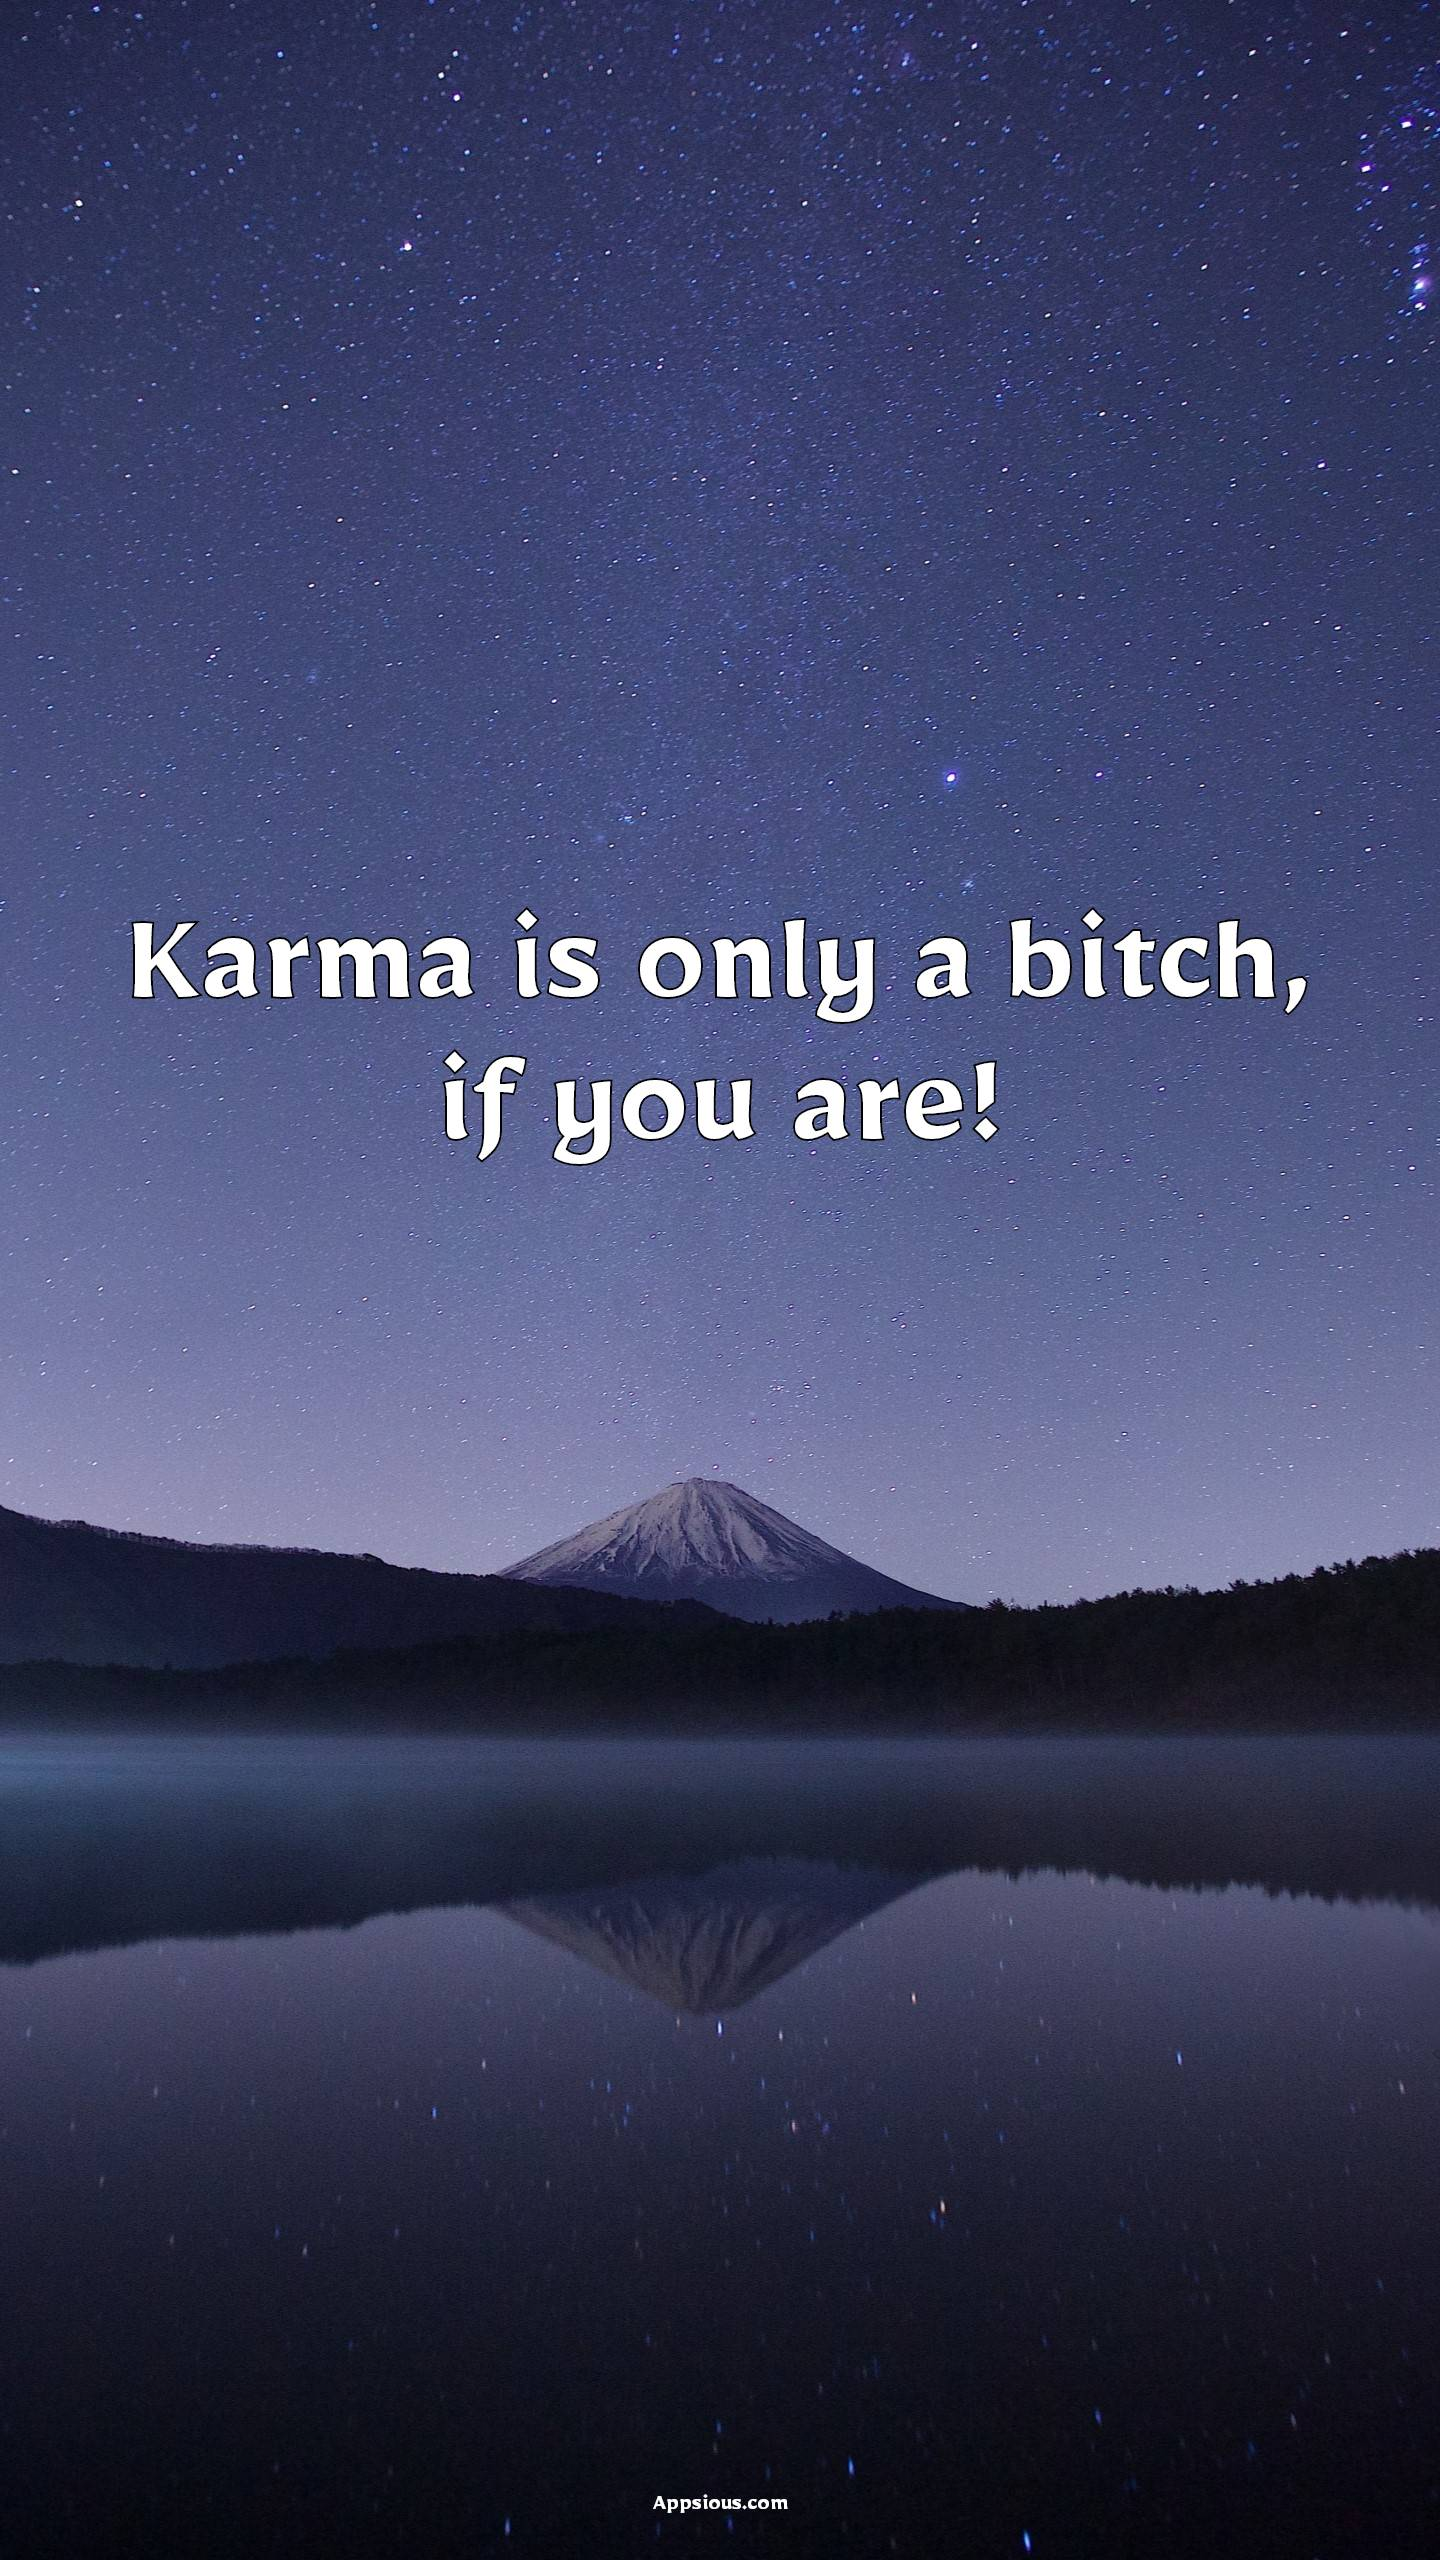 Karma is only a bitch, if you are!